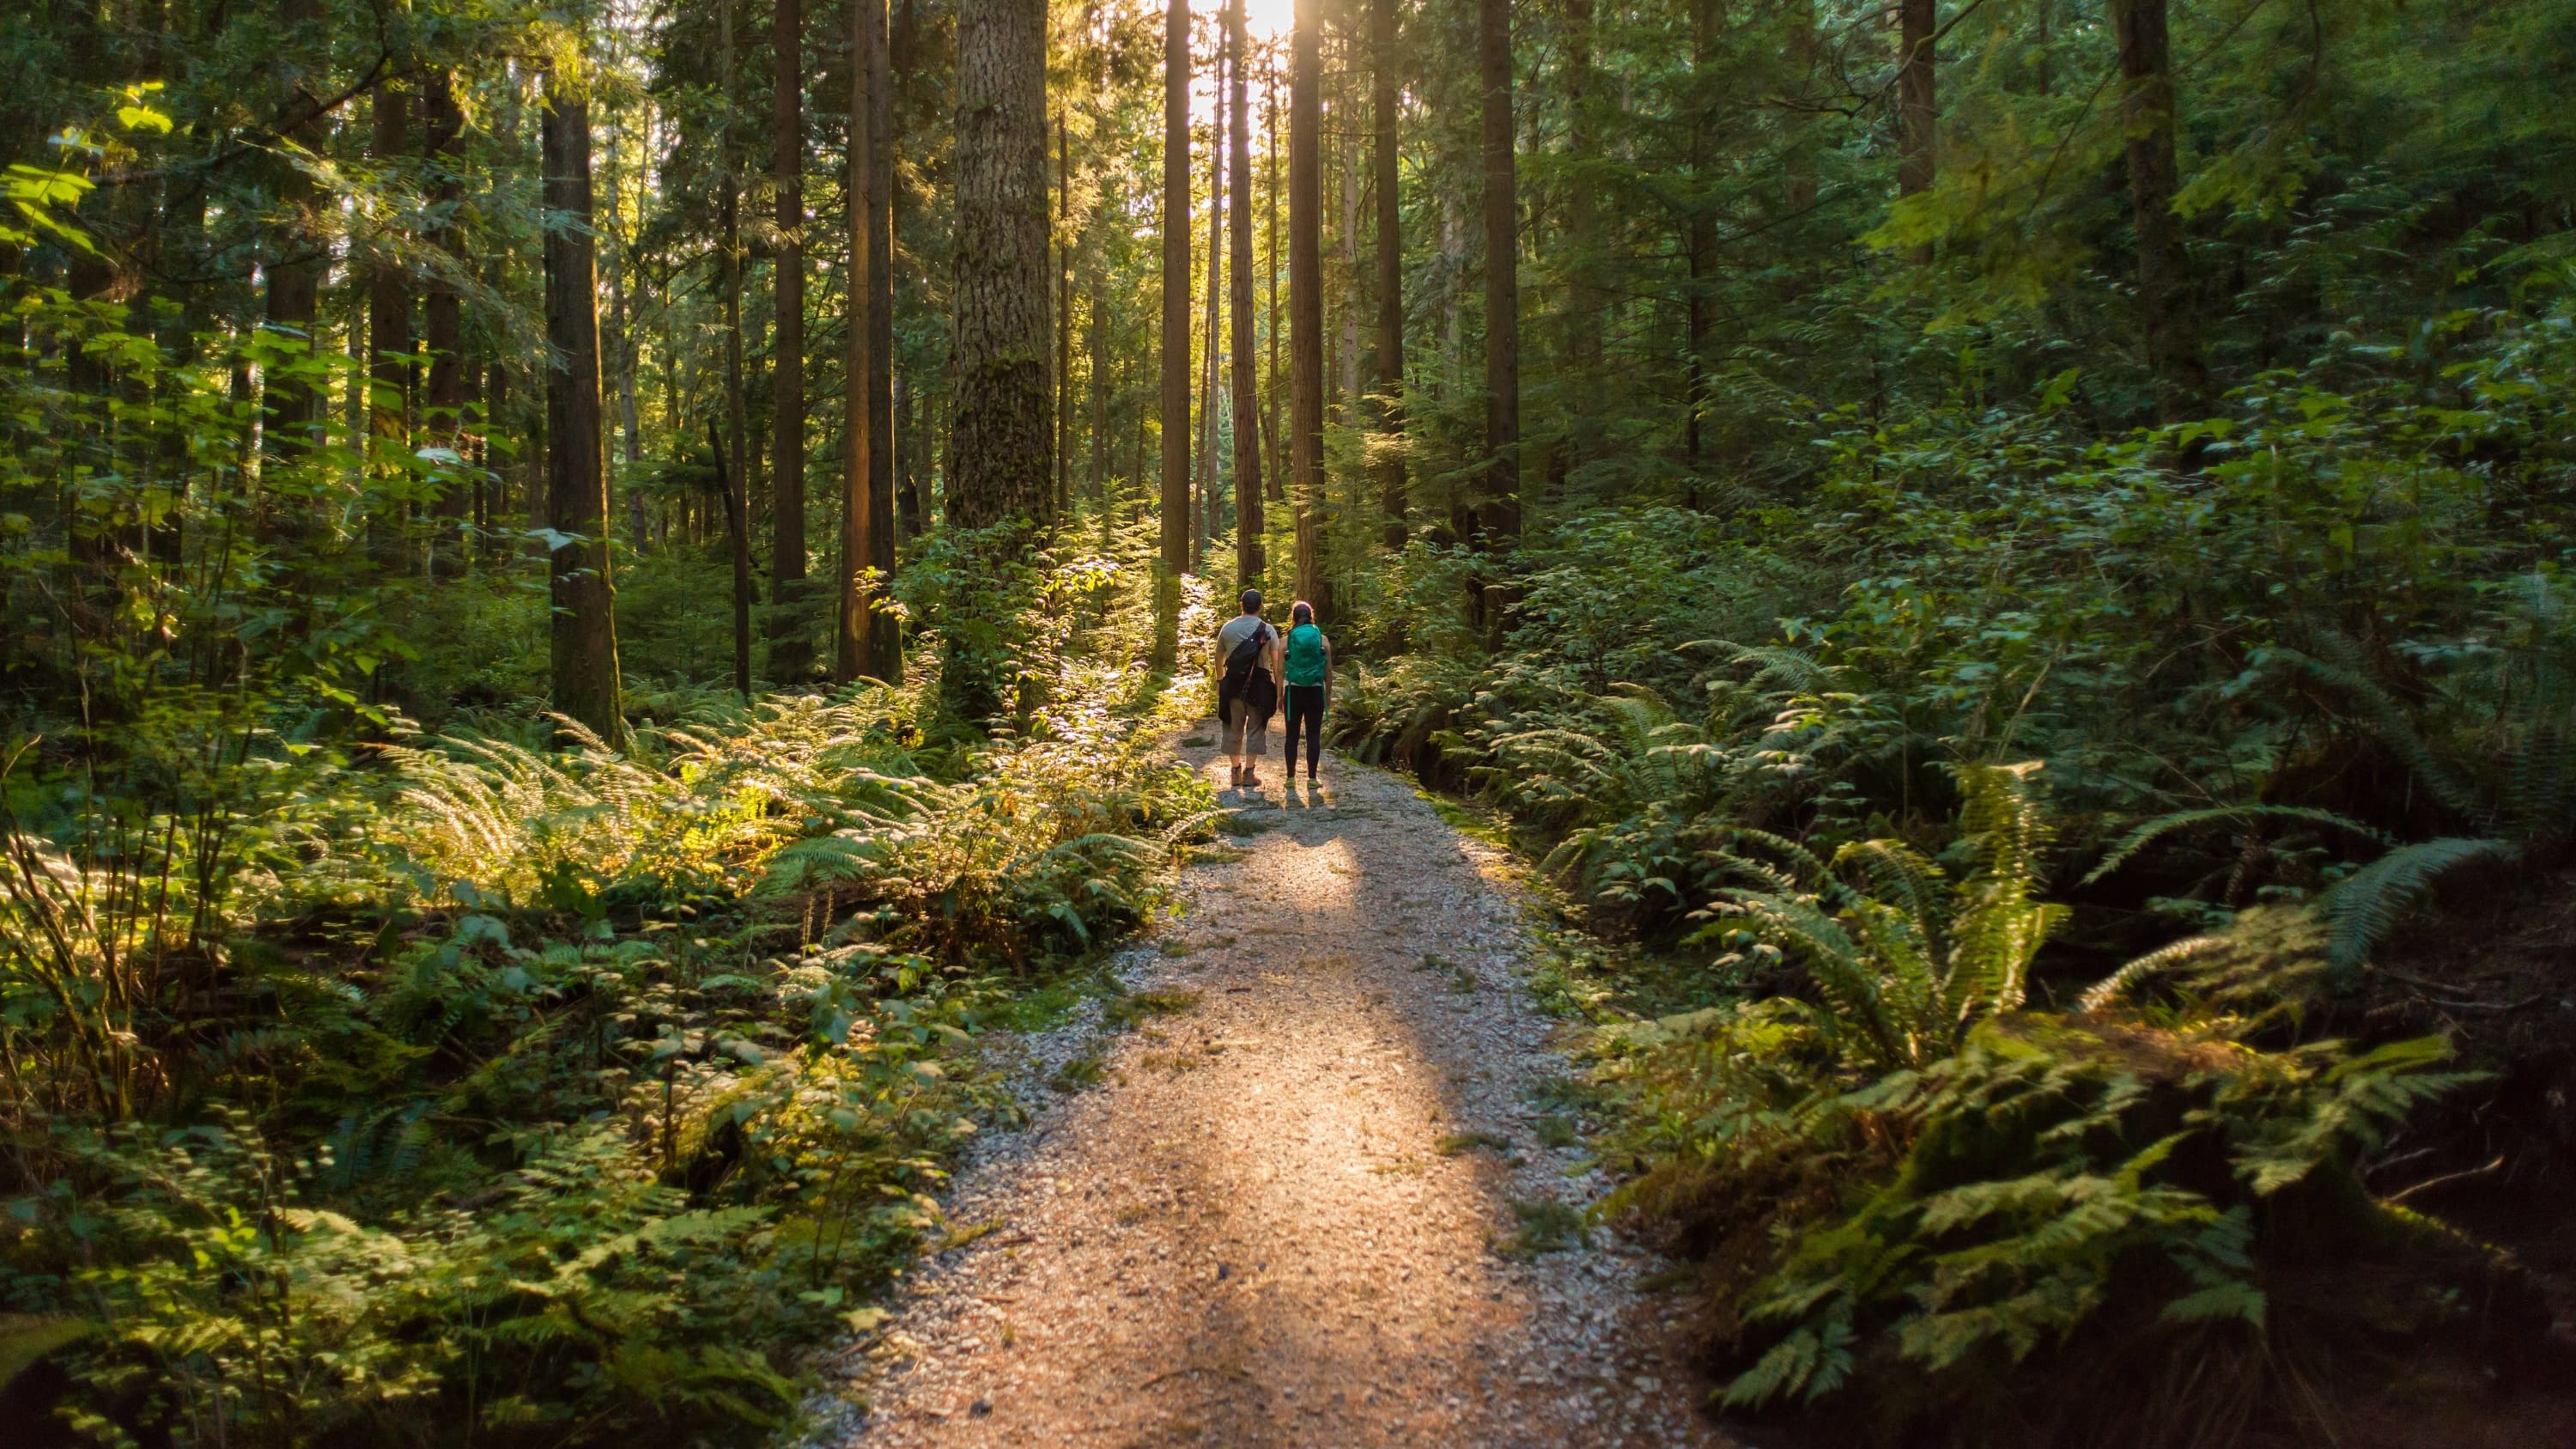 people hiking in a forest, concerned about EEE